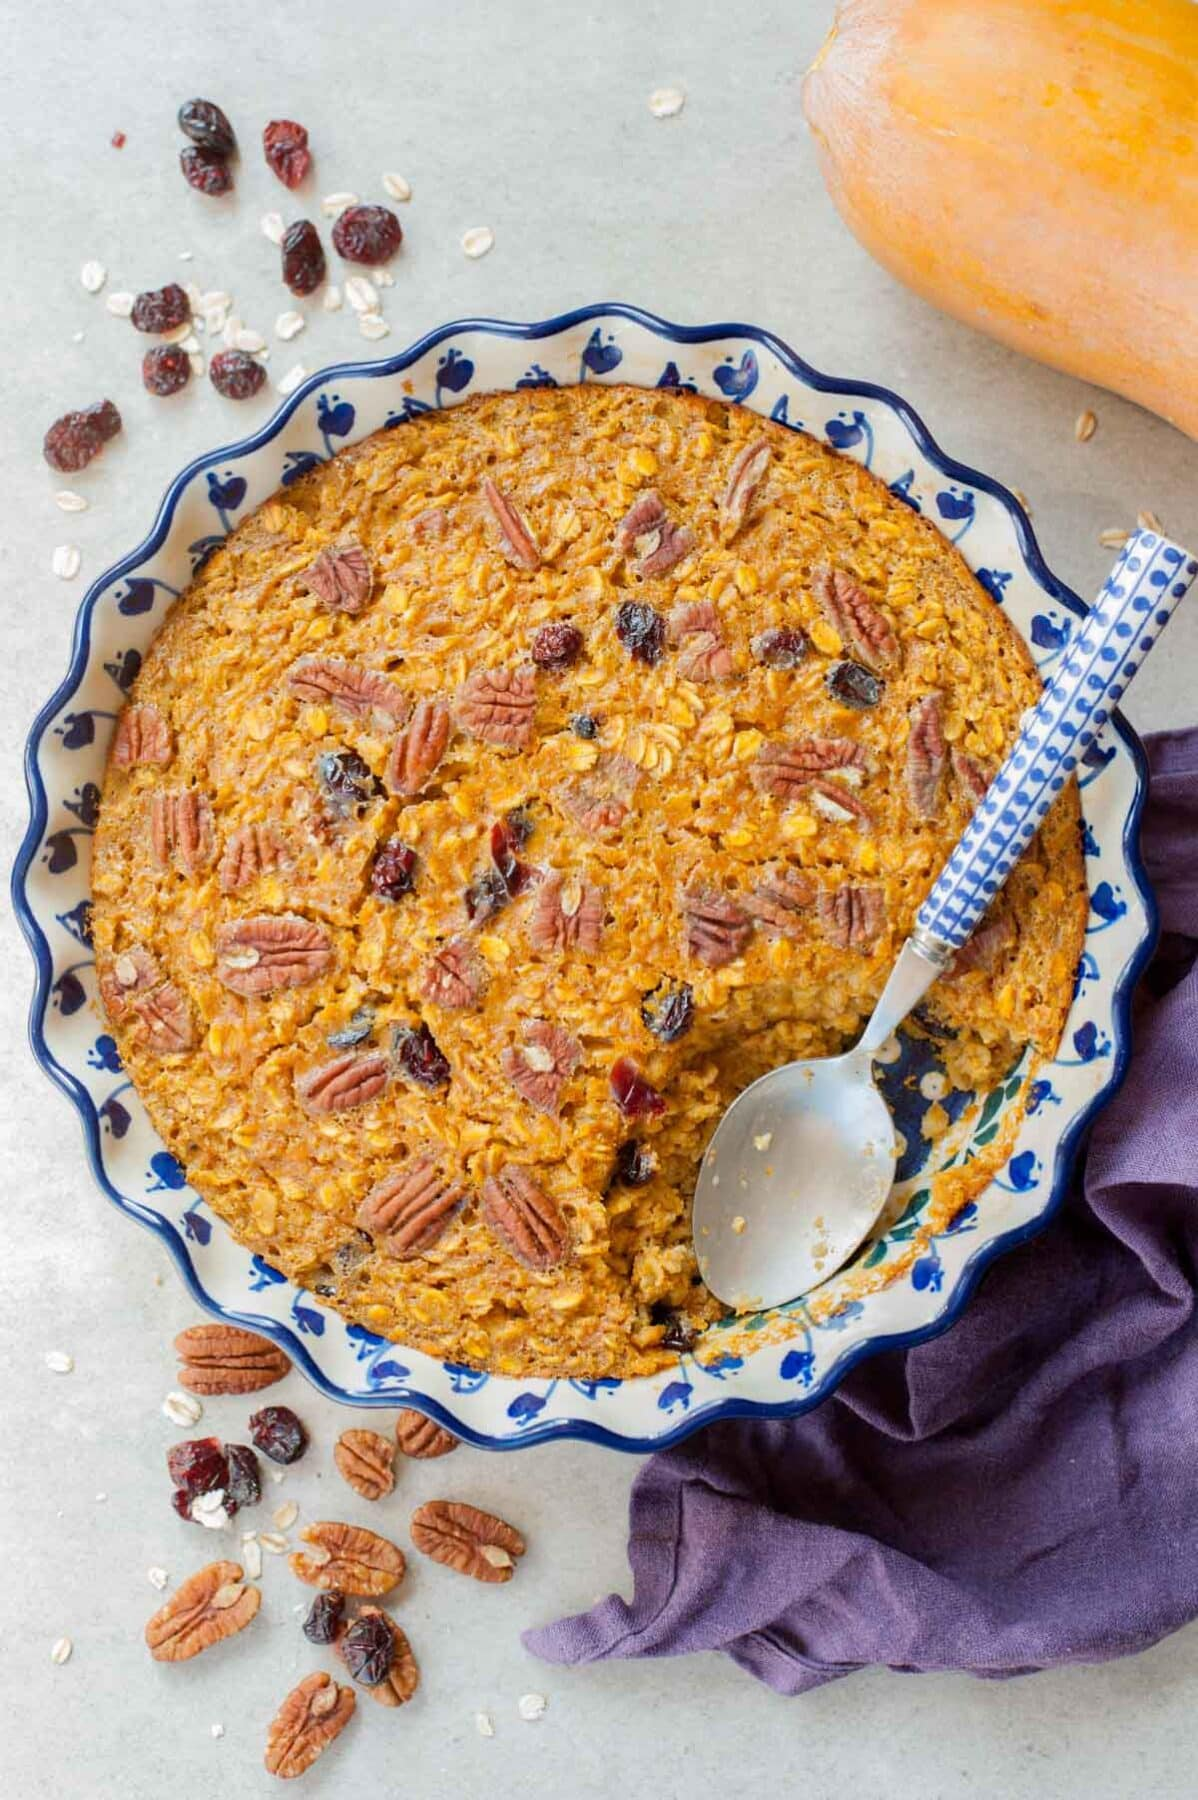 Baked pumpkin oatmeal in a blue-white baking dish. Kitchen cloth, pumpkin, pecans and cranberries in the background.